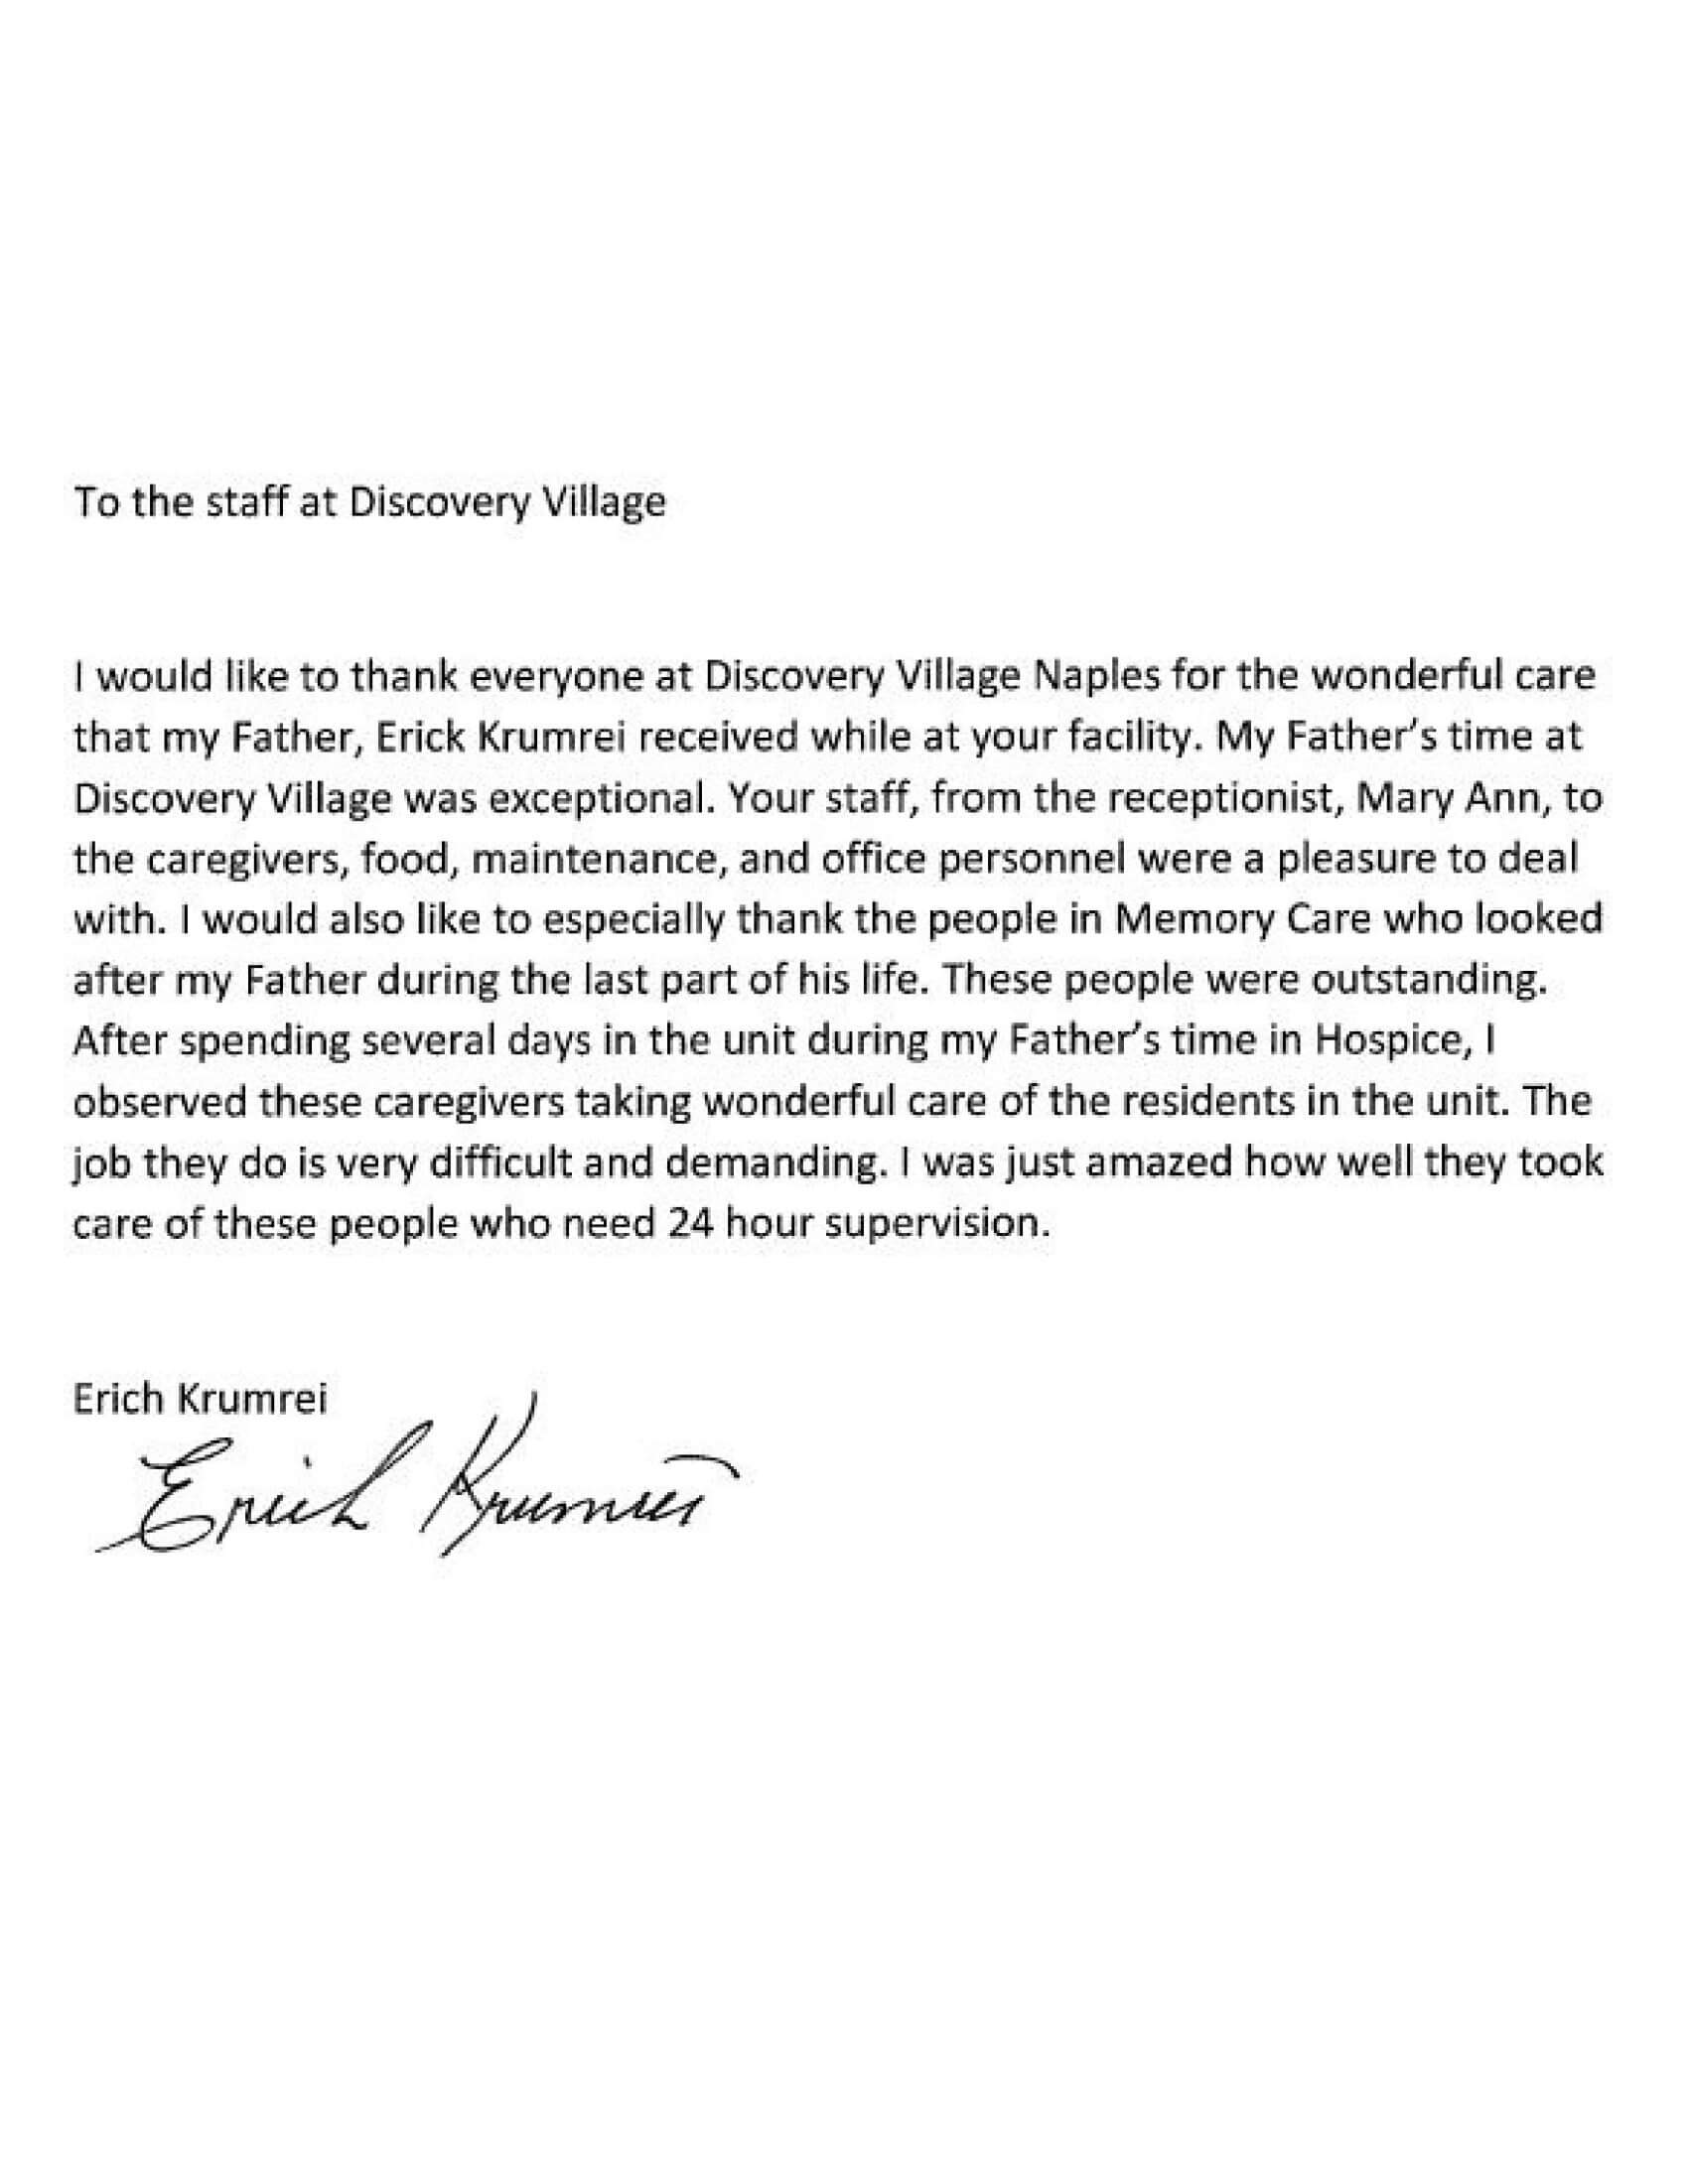 Discovery Village Letter (Naples) (1)